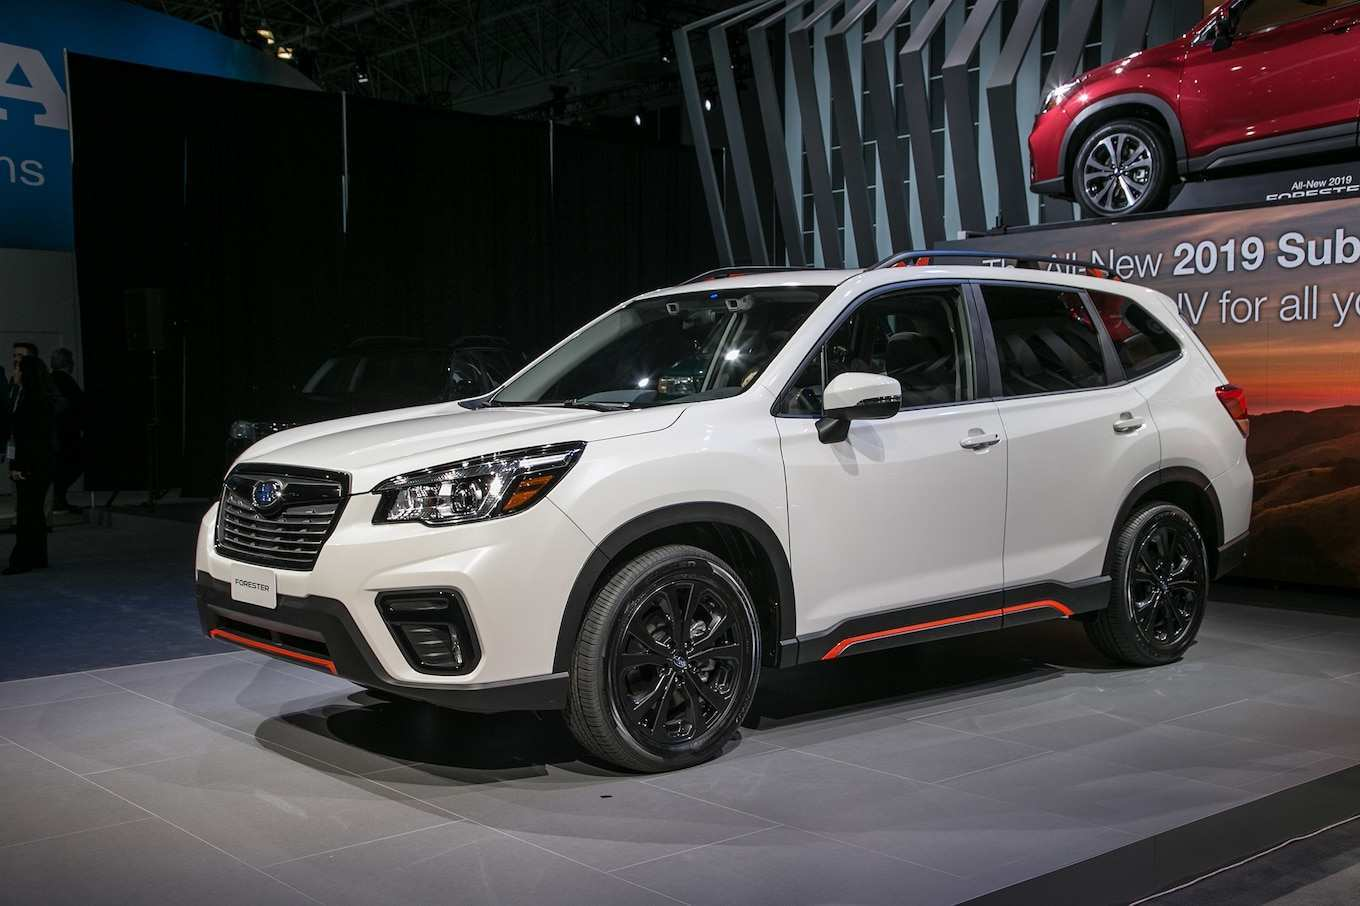 92 New New Subaru Forester 2019 Usa New Review Concept for New Subaru Forester 2019 Usa New Review